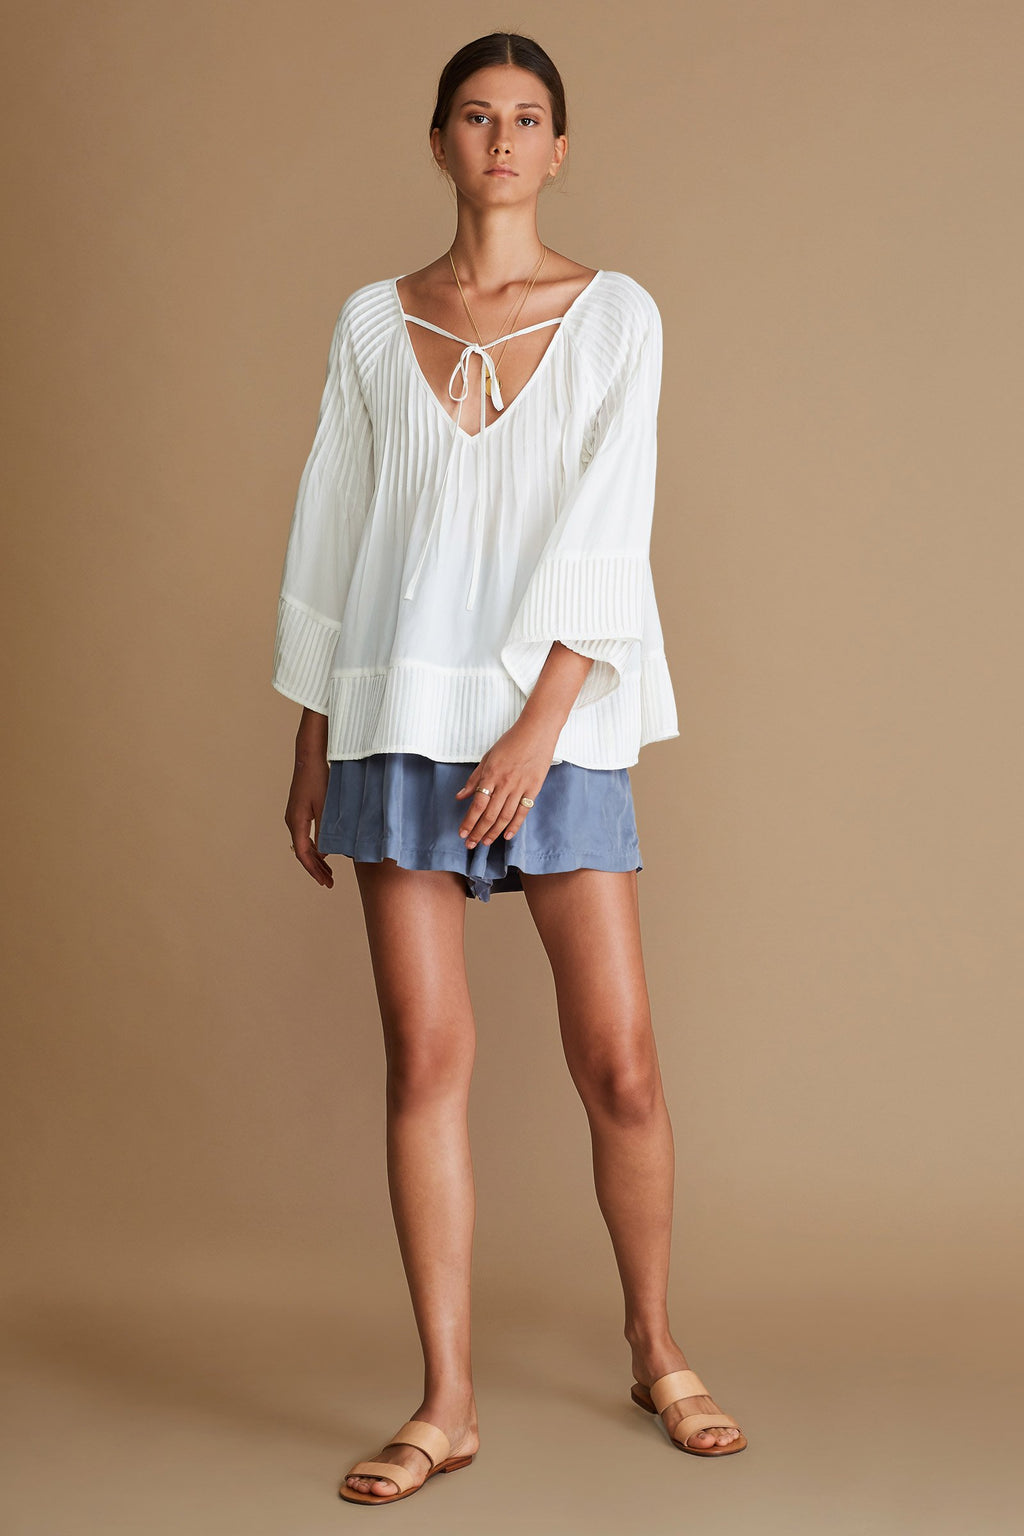 SANCIA - Isolda Blouse online at PAYA boutique